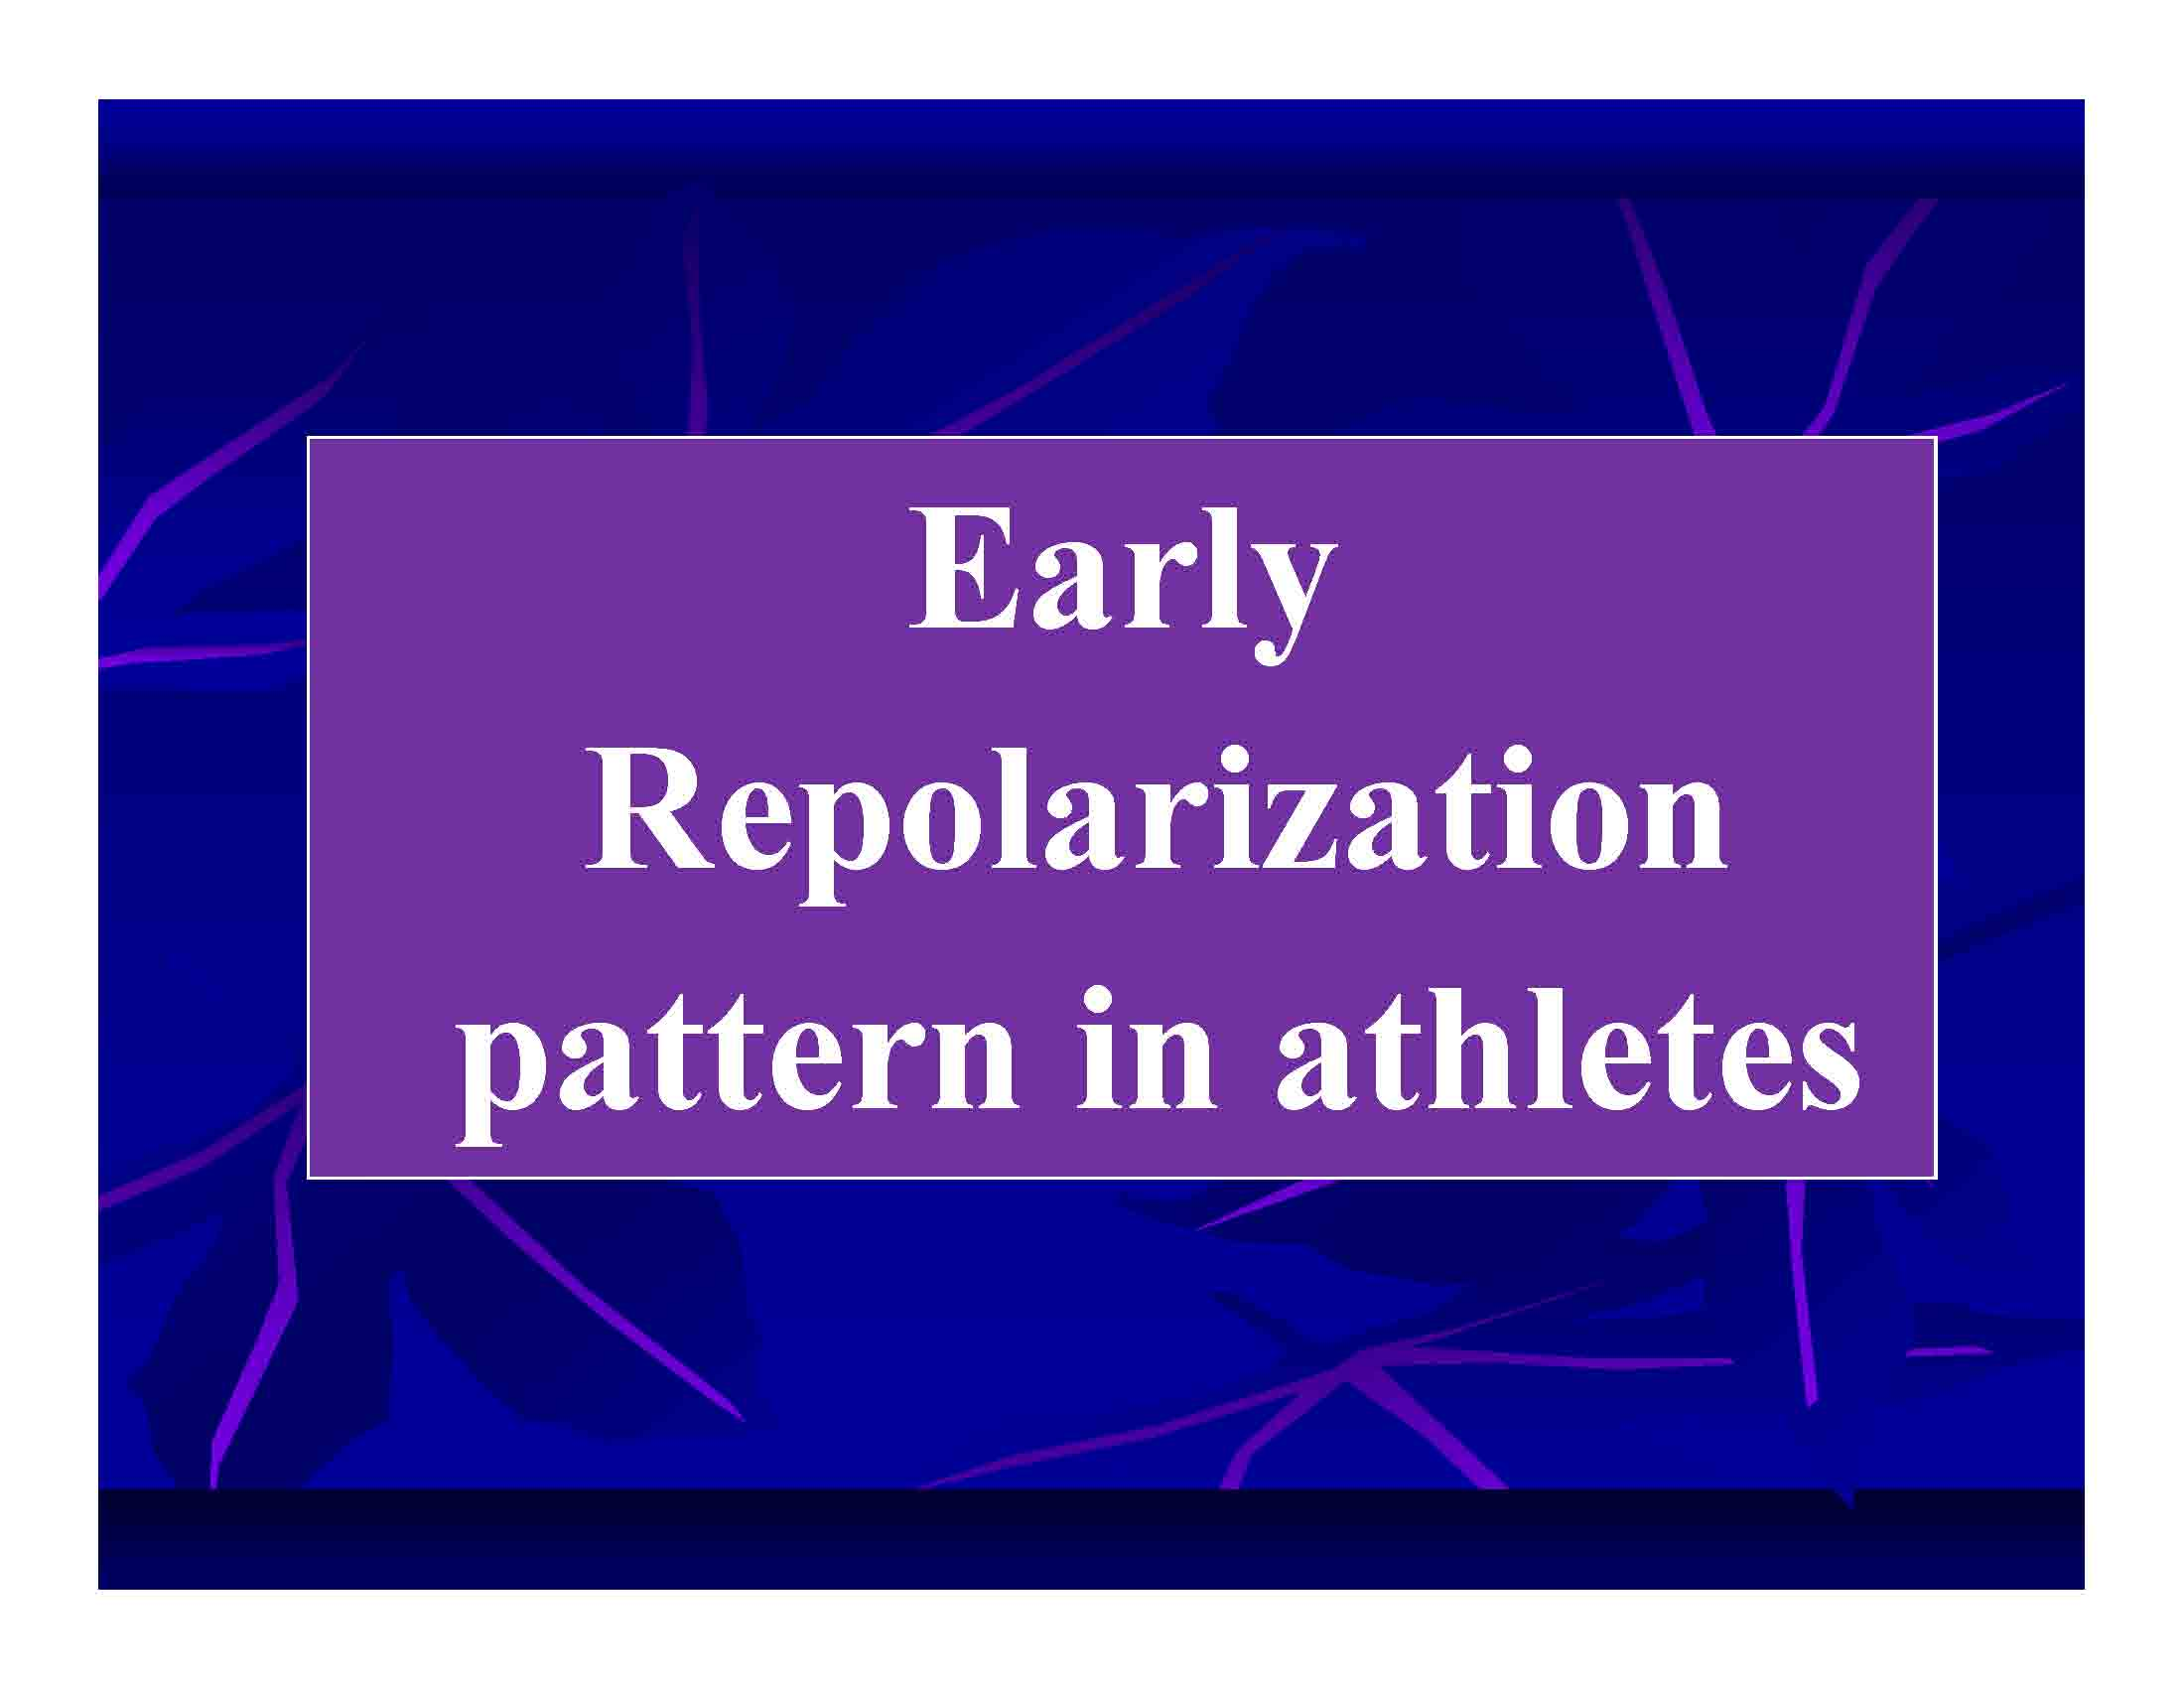 Early Repolarization pattern in athletes